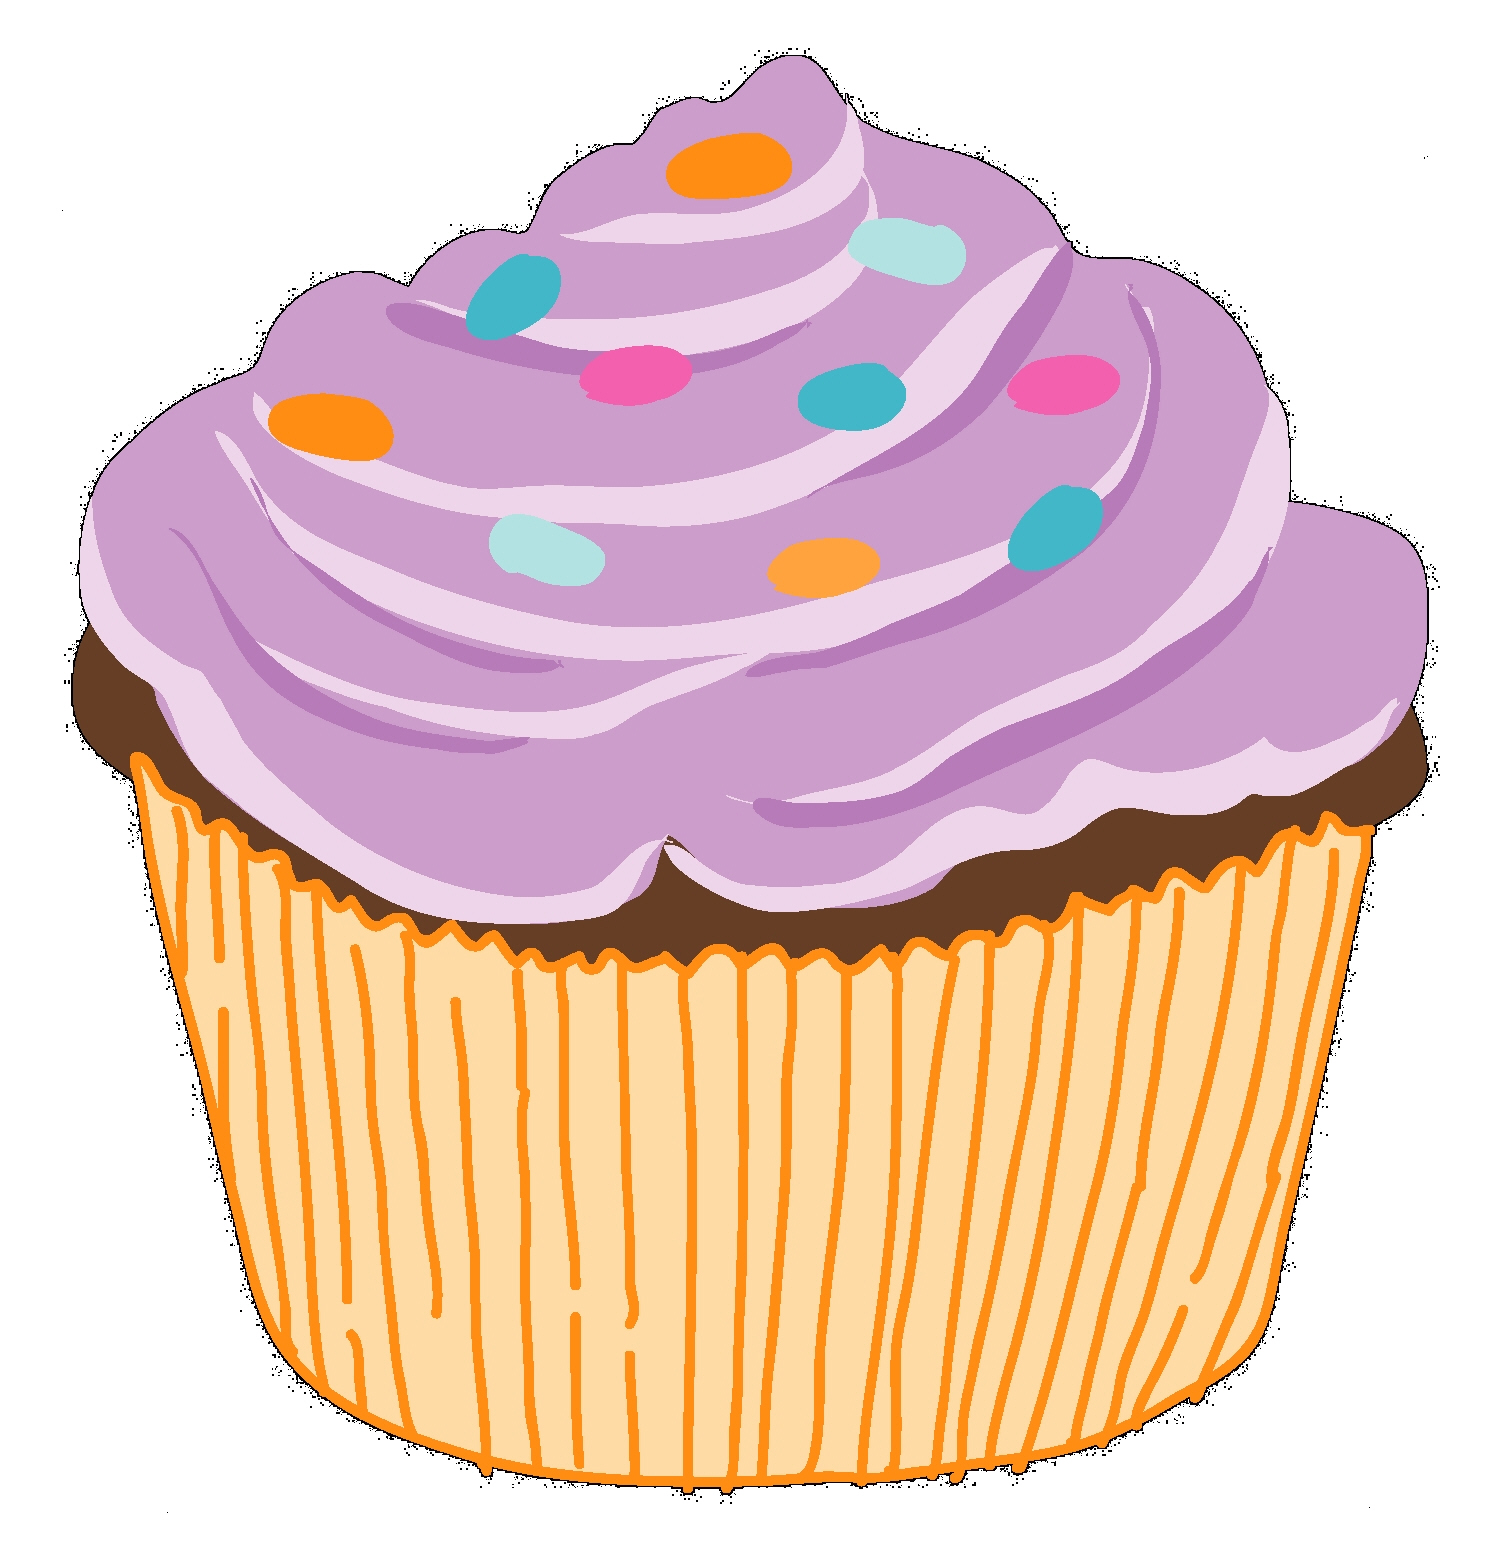 Muffins clipart giant cupcake. Free download panda